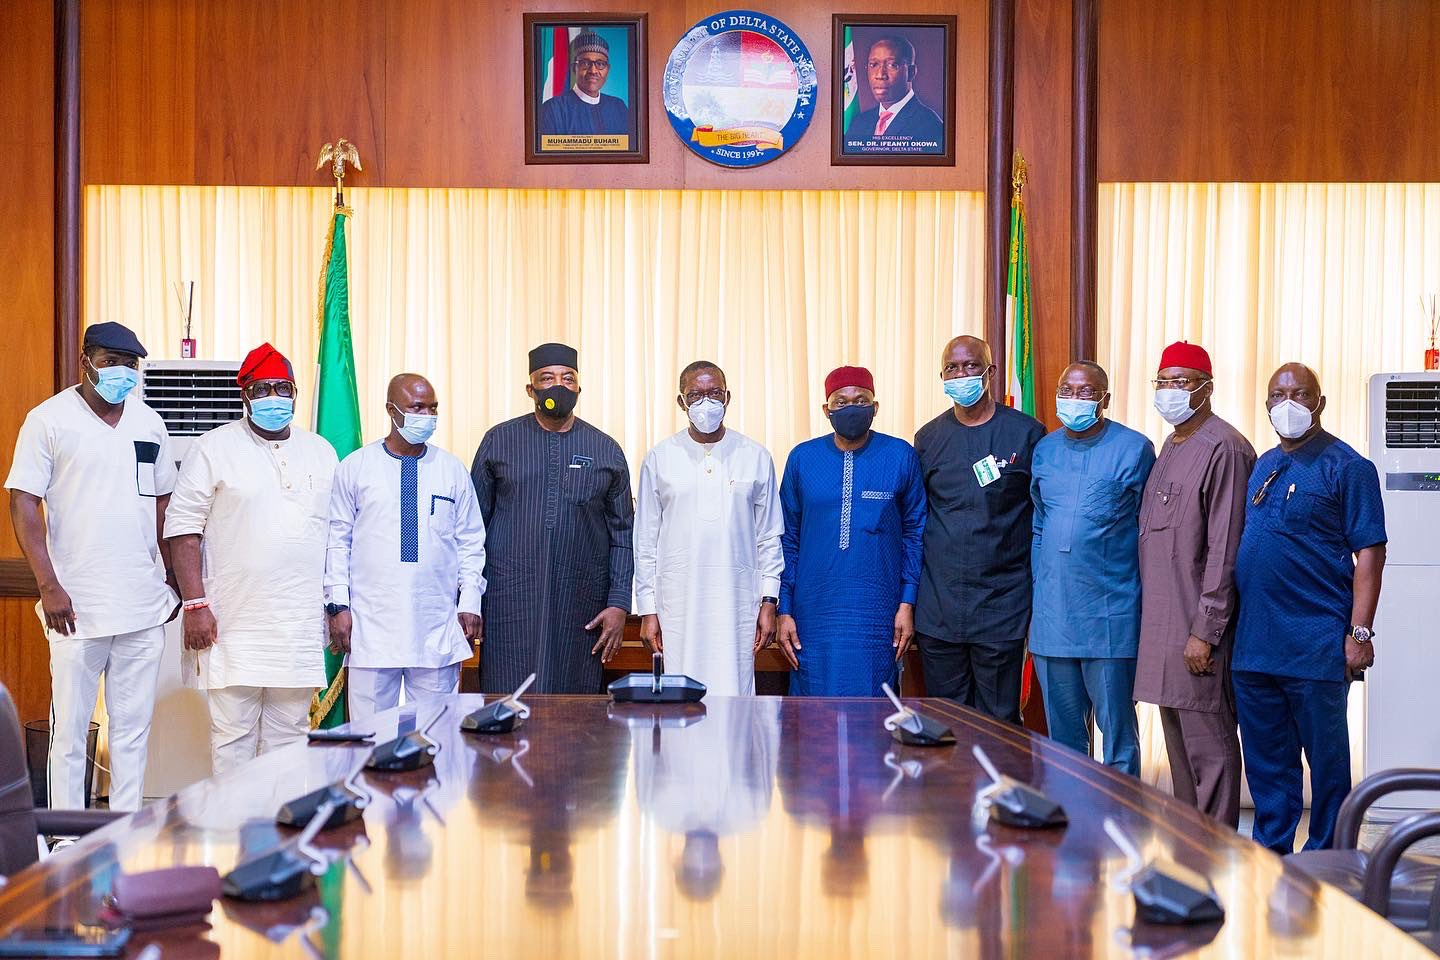 Delta Governor, Senator Dr. Ifeanyi Okowa (5th left) Minority Leader, Federal House of Representatives, Rt. Hon. Ndudi Elumelu (5th right), Hon. Julius Pondi, (left), Hon. Thomas Ereyetomi, (2nd left), Hon. Ben Igbakpa (3rd left)and Hon. Leo Ogor, (4th left), Hon. Victor Nwokolo,(4th right), Hon. Ejiroghehne Waive (3rd right), Hon. Ossai Nicholas Ossai, (2nd right) and Hon. Efe Afe, (right) during a solidarity visit by members of Delta caucus in the Federal House of Representatives to the Governor in Asaba over destruction of public infrastructure during the EndSARS Protest on Wednesday, October 28, 2020